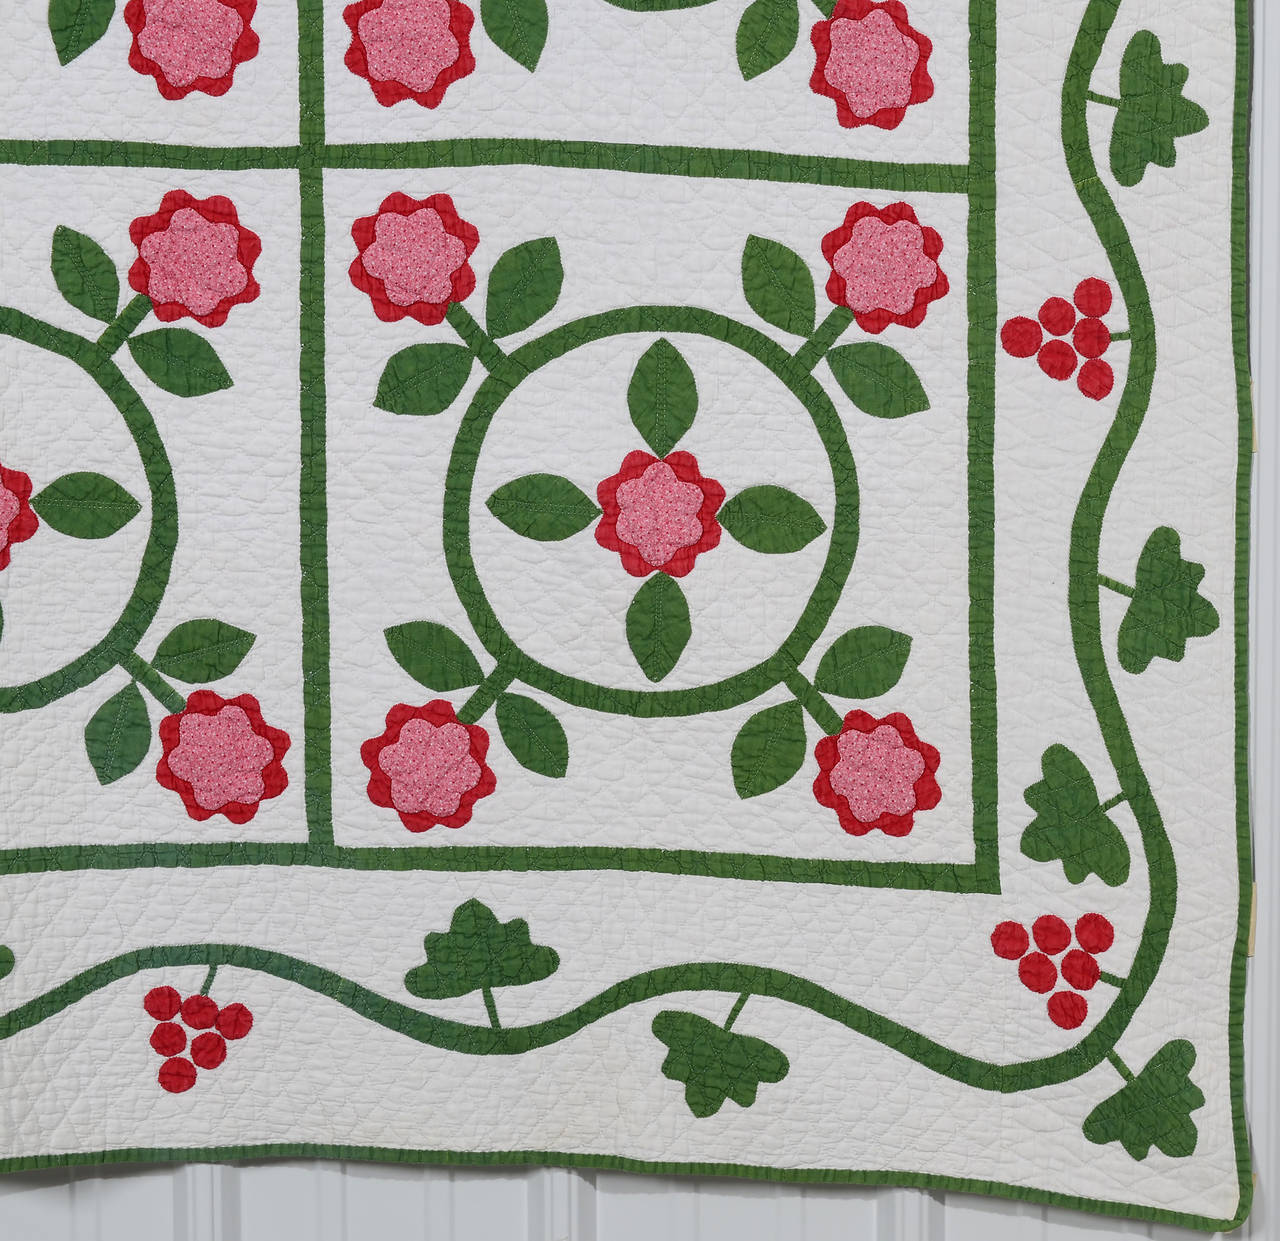 American Floral Wreaths Quilt For Sale